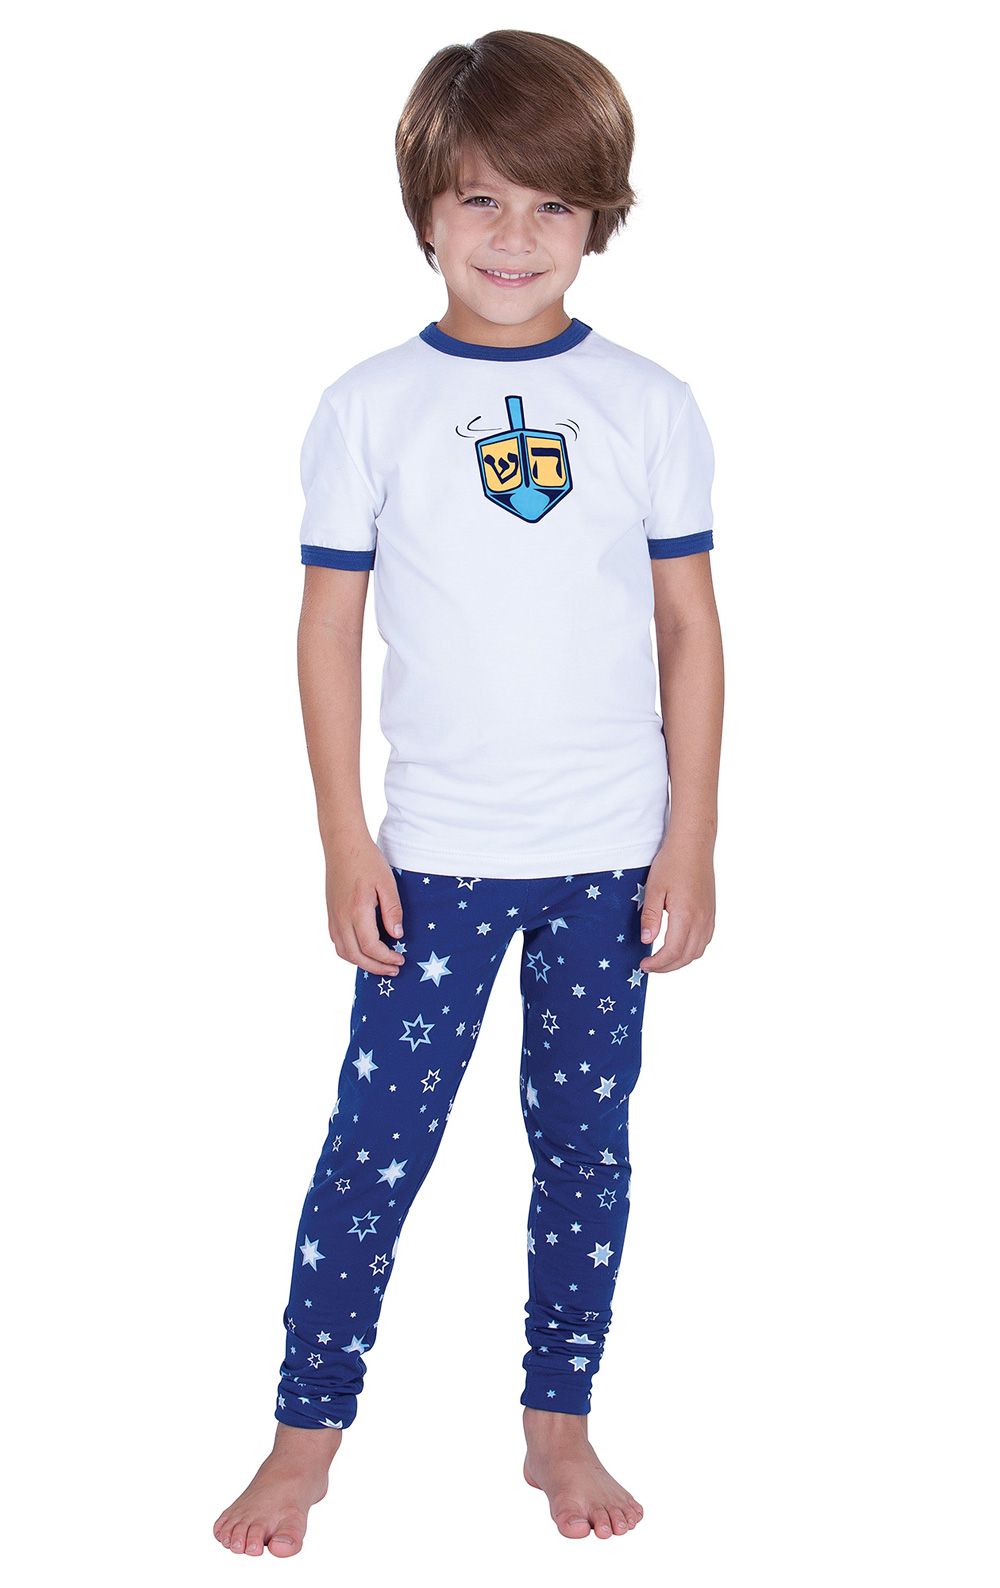 Find great deals on eBay for boys sleepwear. Shop with confidence.